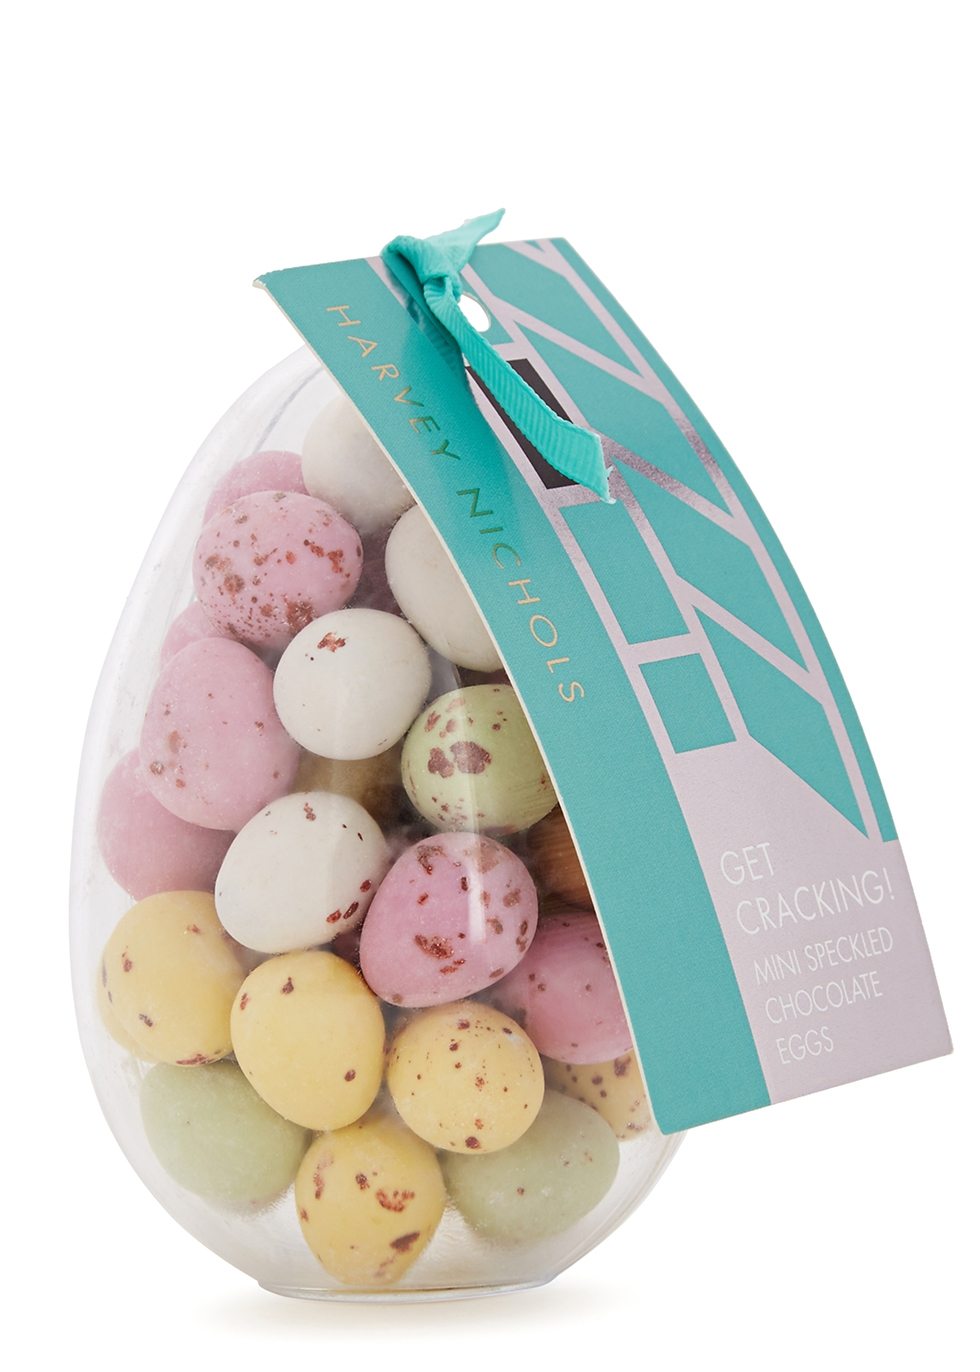 Get Cracking Mini Speckled Chocolate Eggs 185g